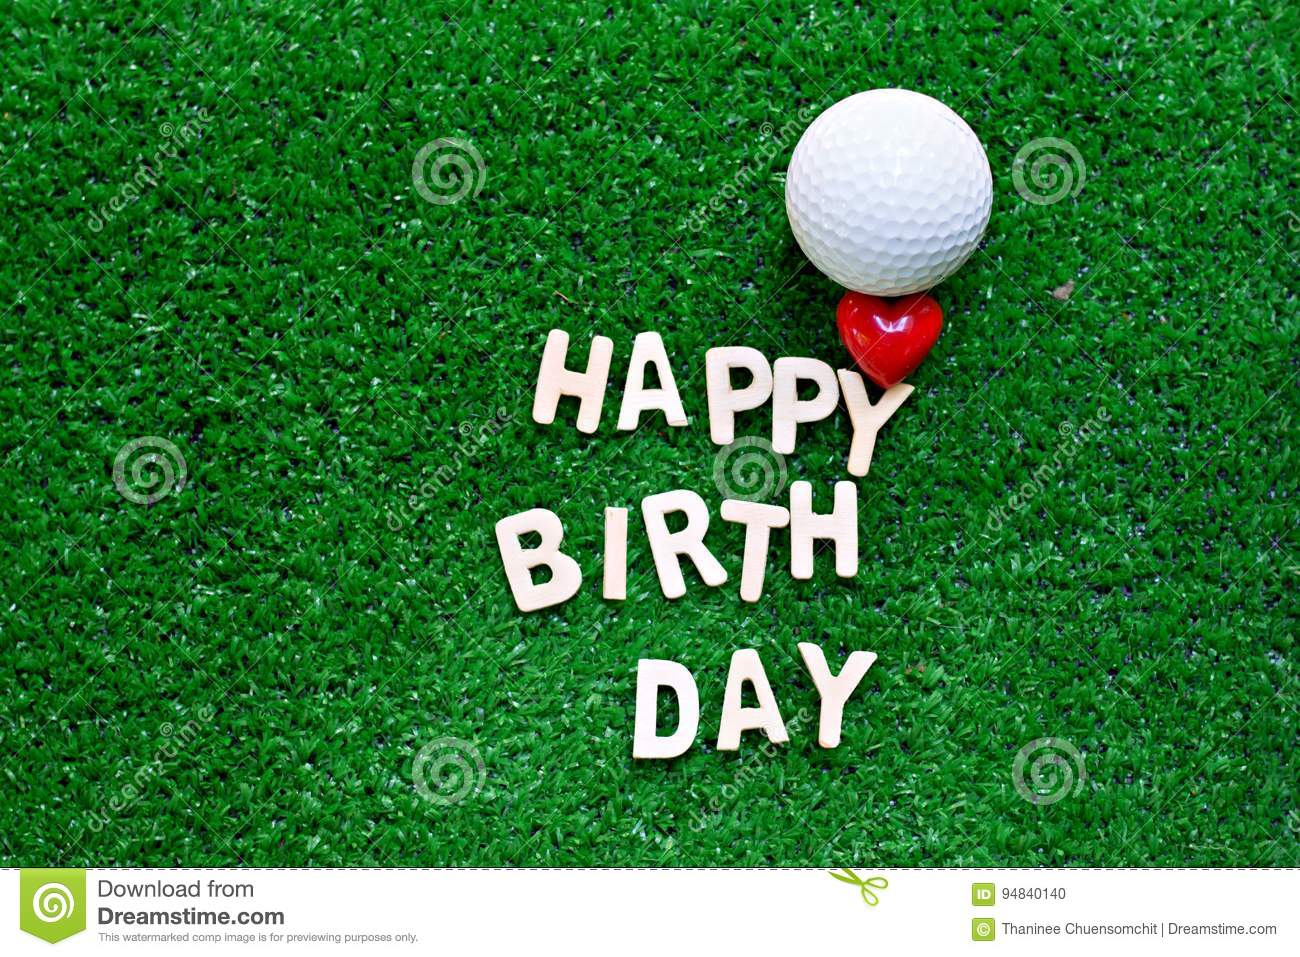 Golf Ball With Happy Birthday Wording On Green Grass For Golfer